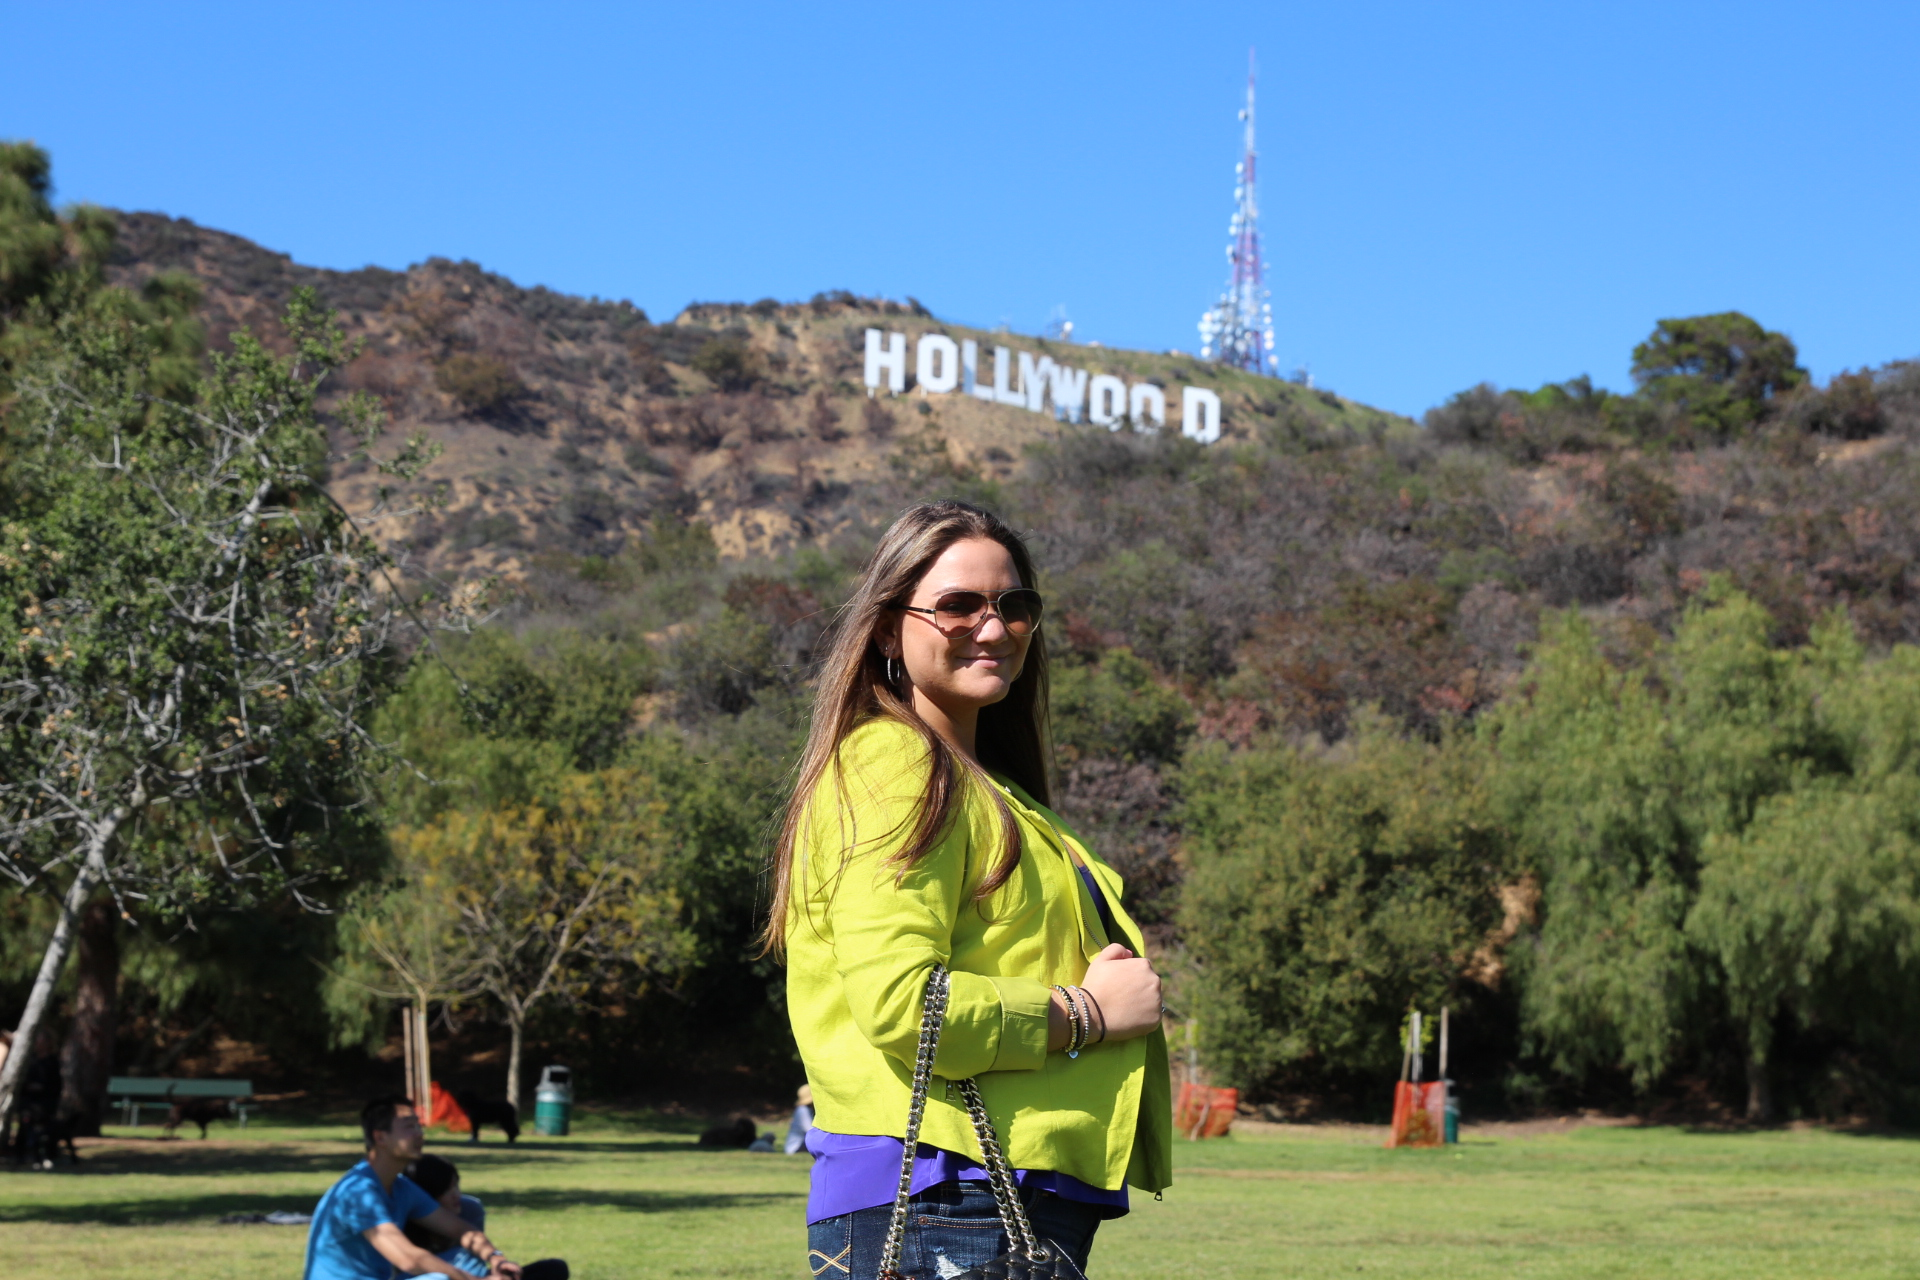 Karen Kane MissyOnMadison Moto Jacket Neon Rebecca Minkoff Handbag Hollywood Sign Tourist Cali California Blogger